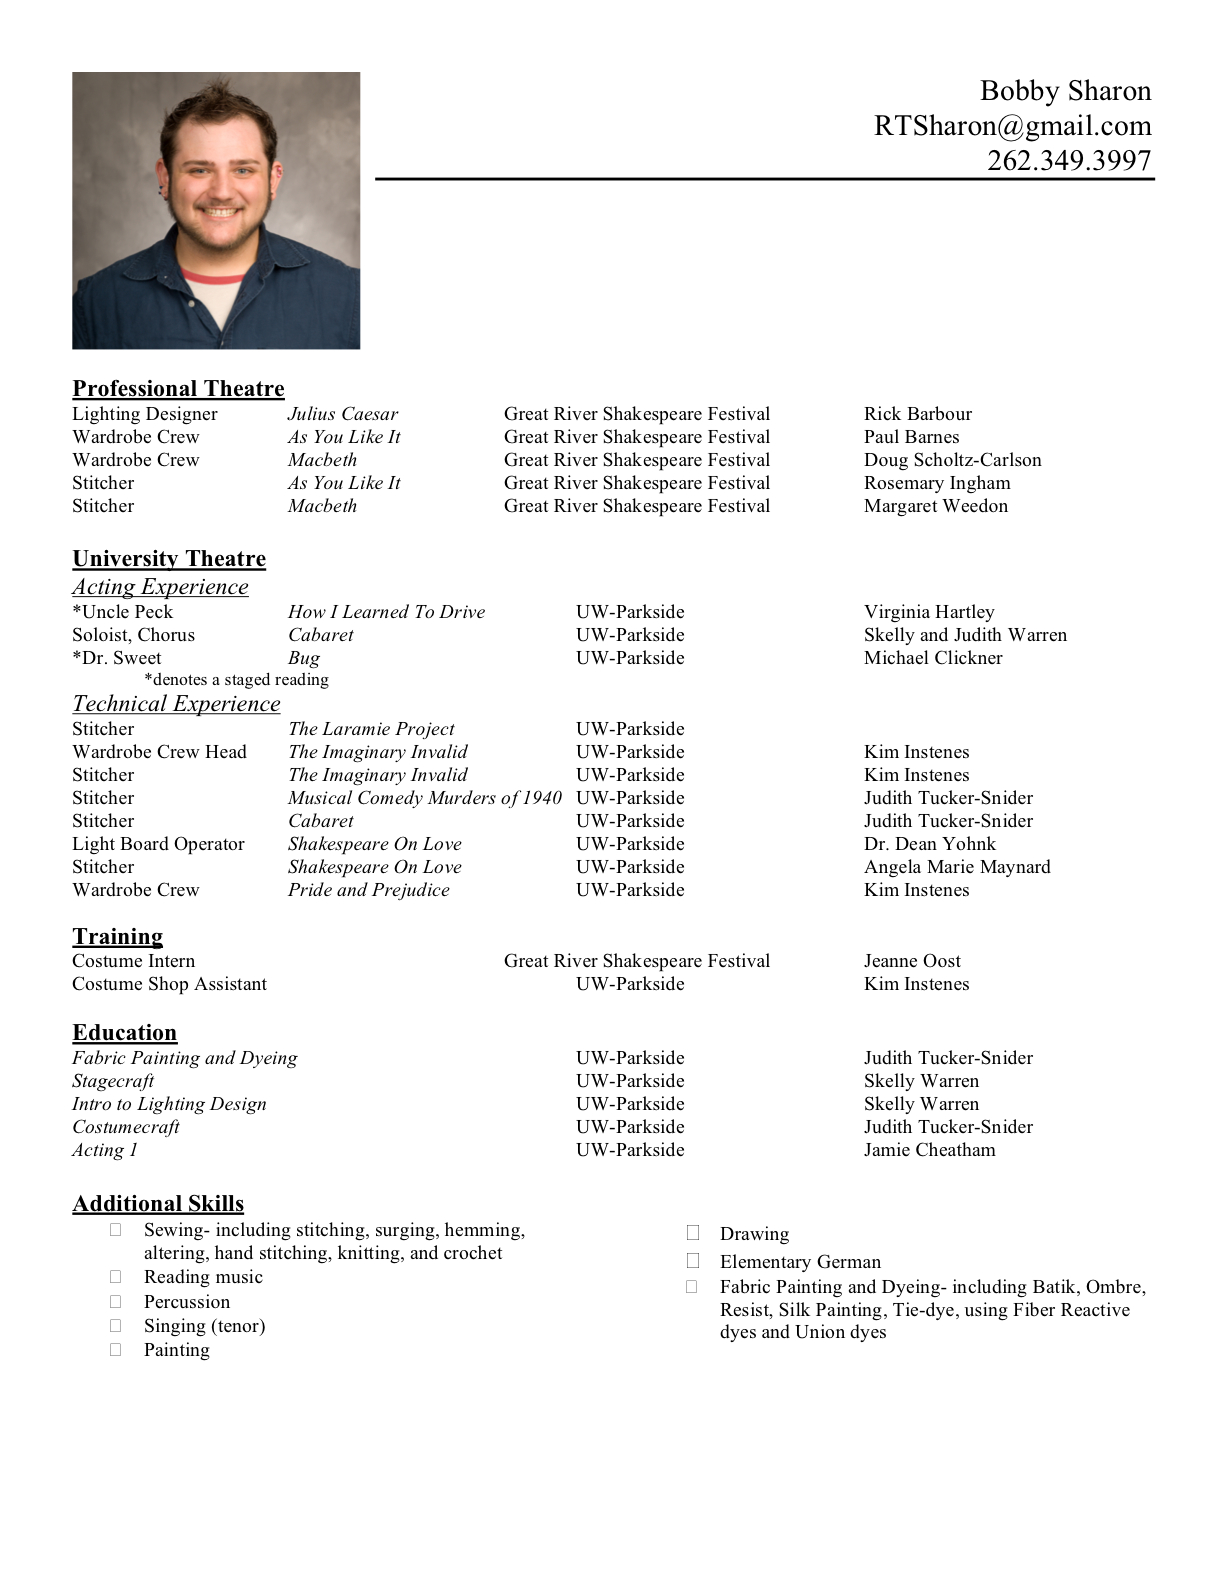 hotel clerk resume3 hotel clerk resume1 hotel front desk resume how to type